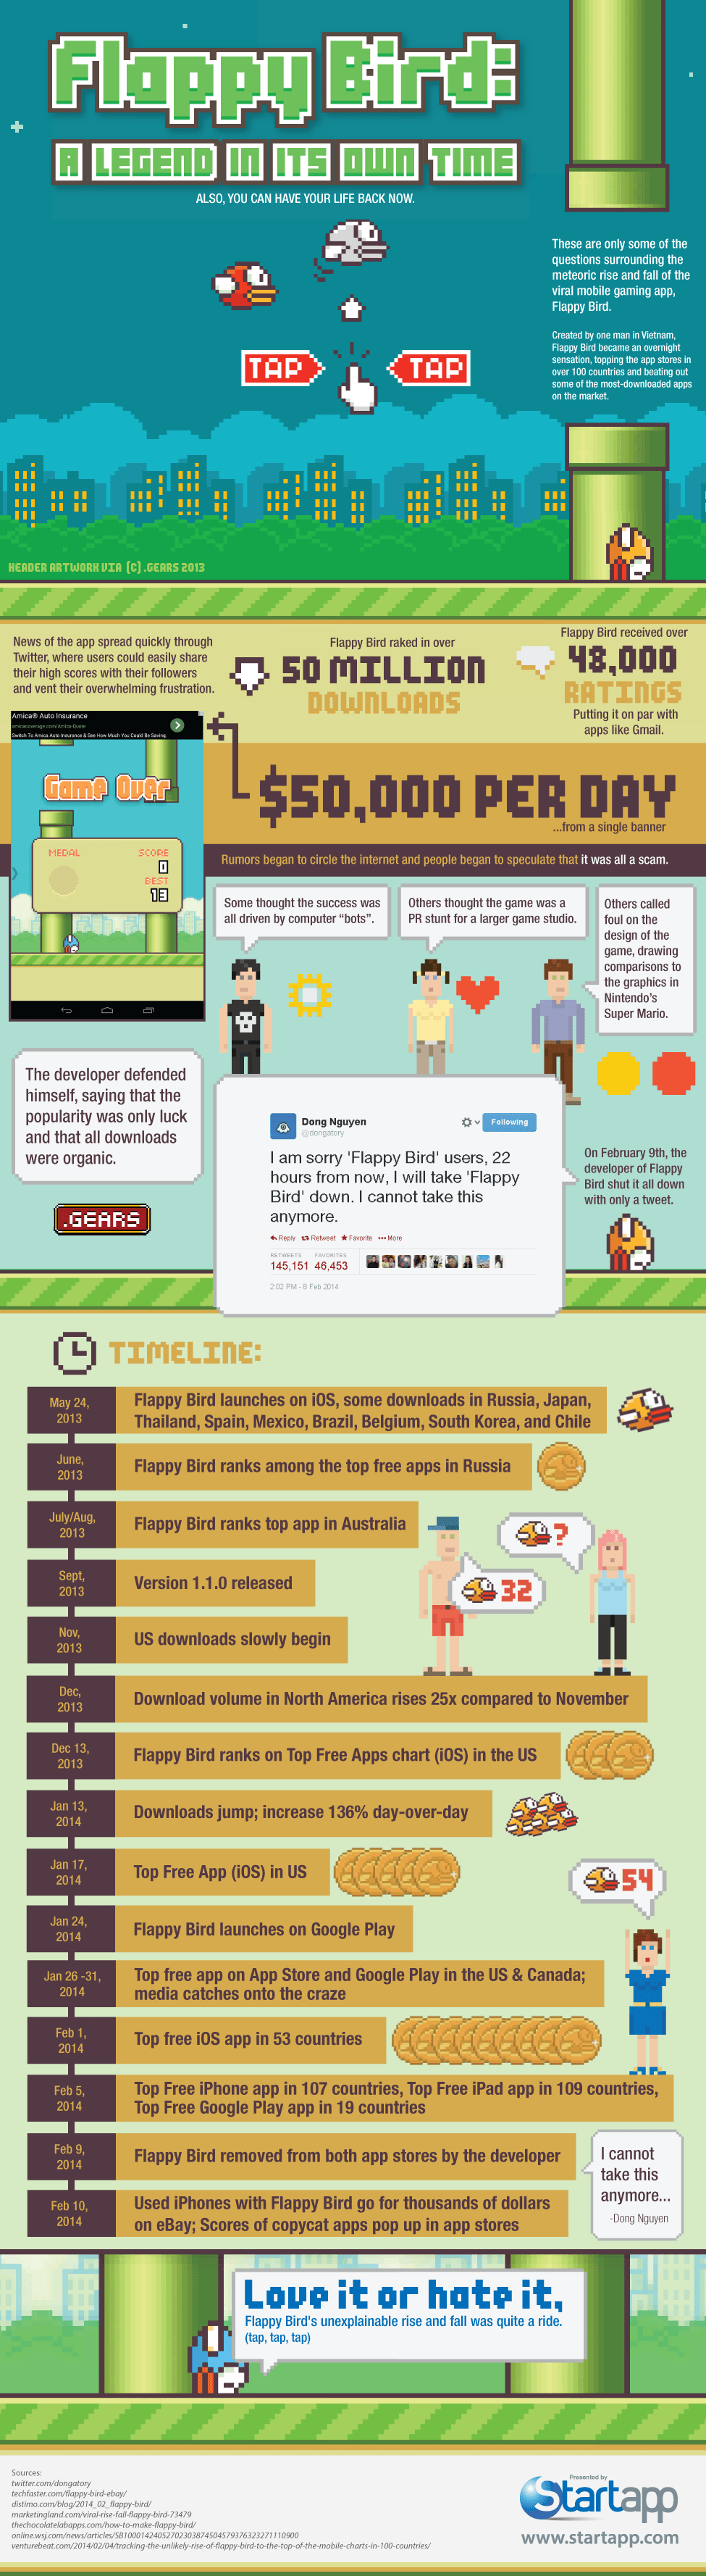 Marketing Lesson - The Life and Death of Flappy Bird